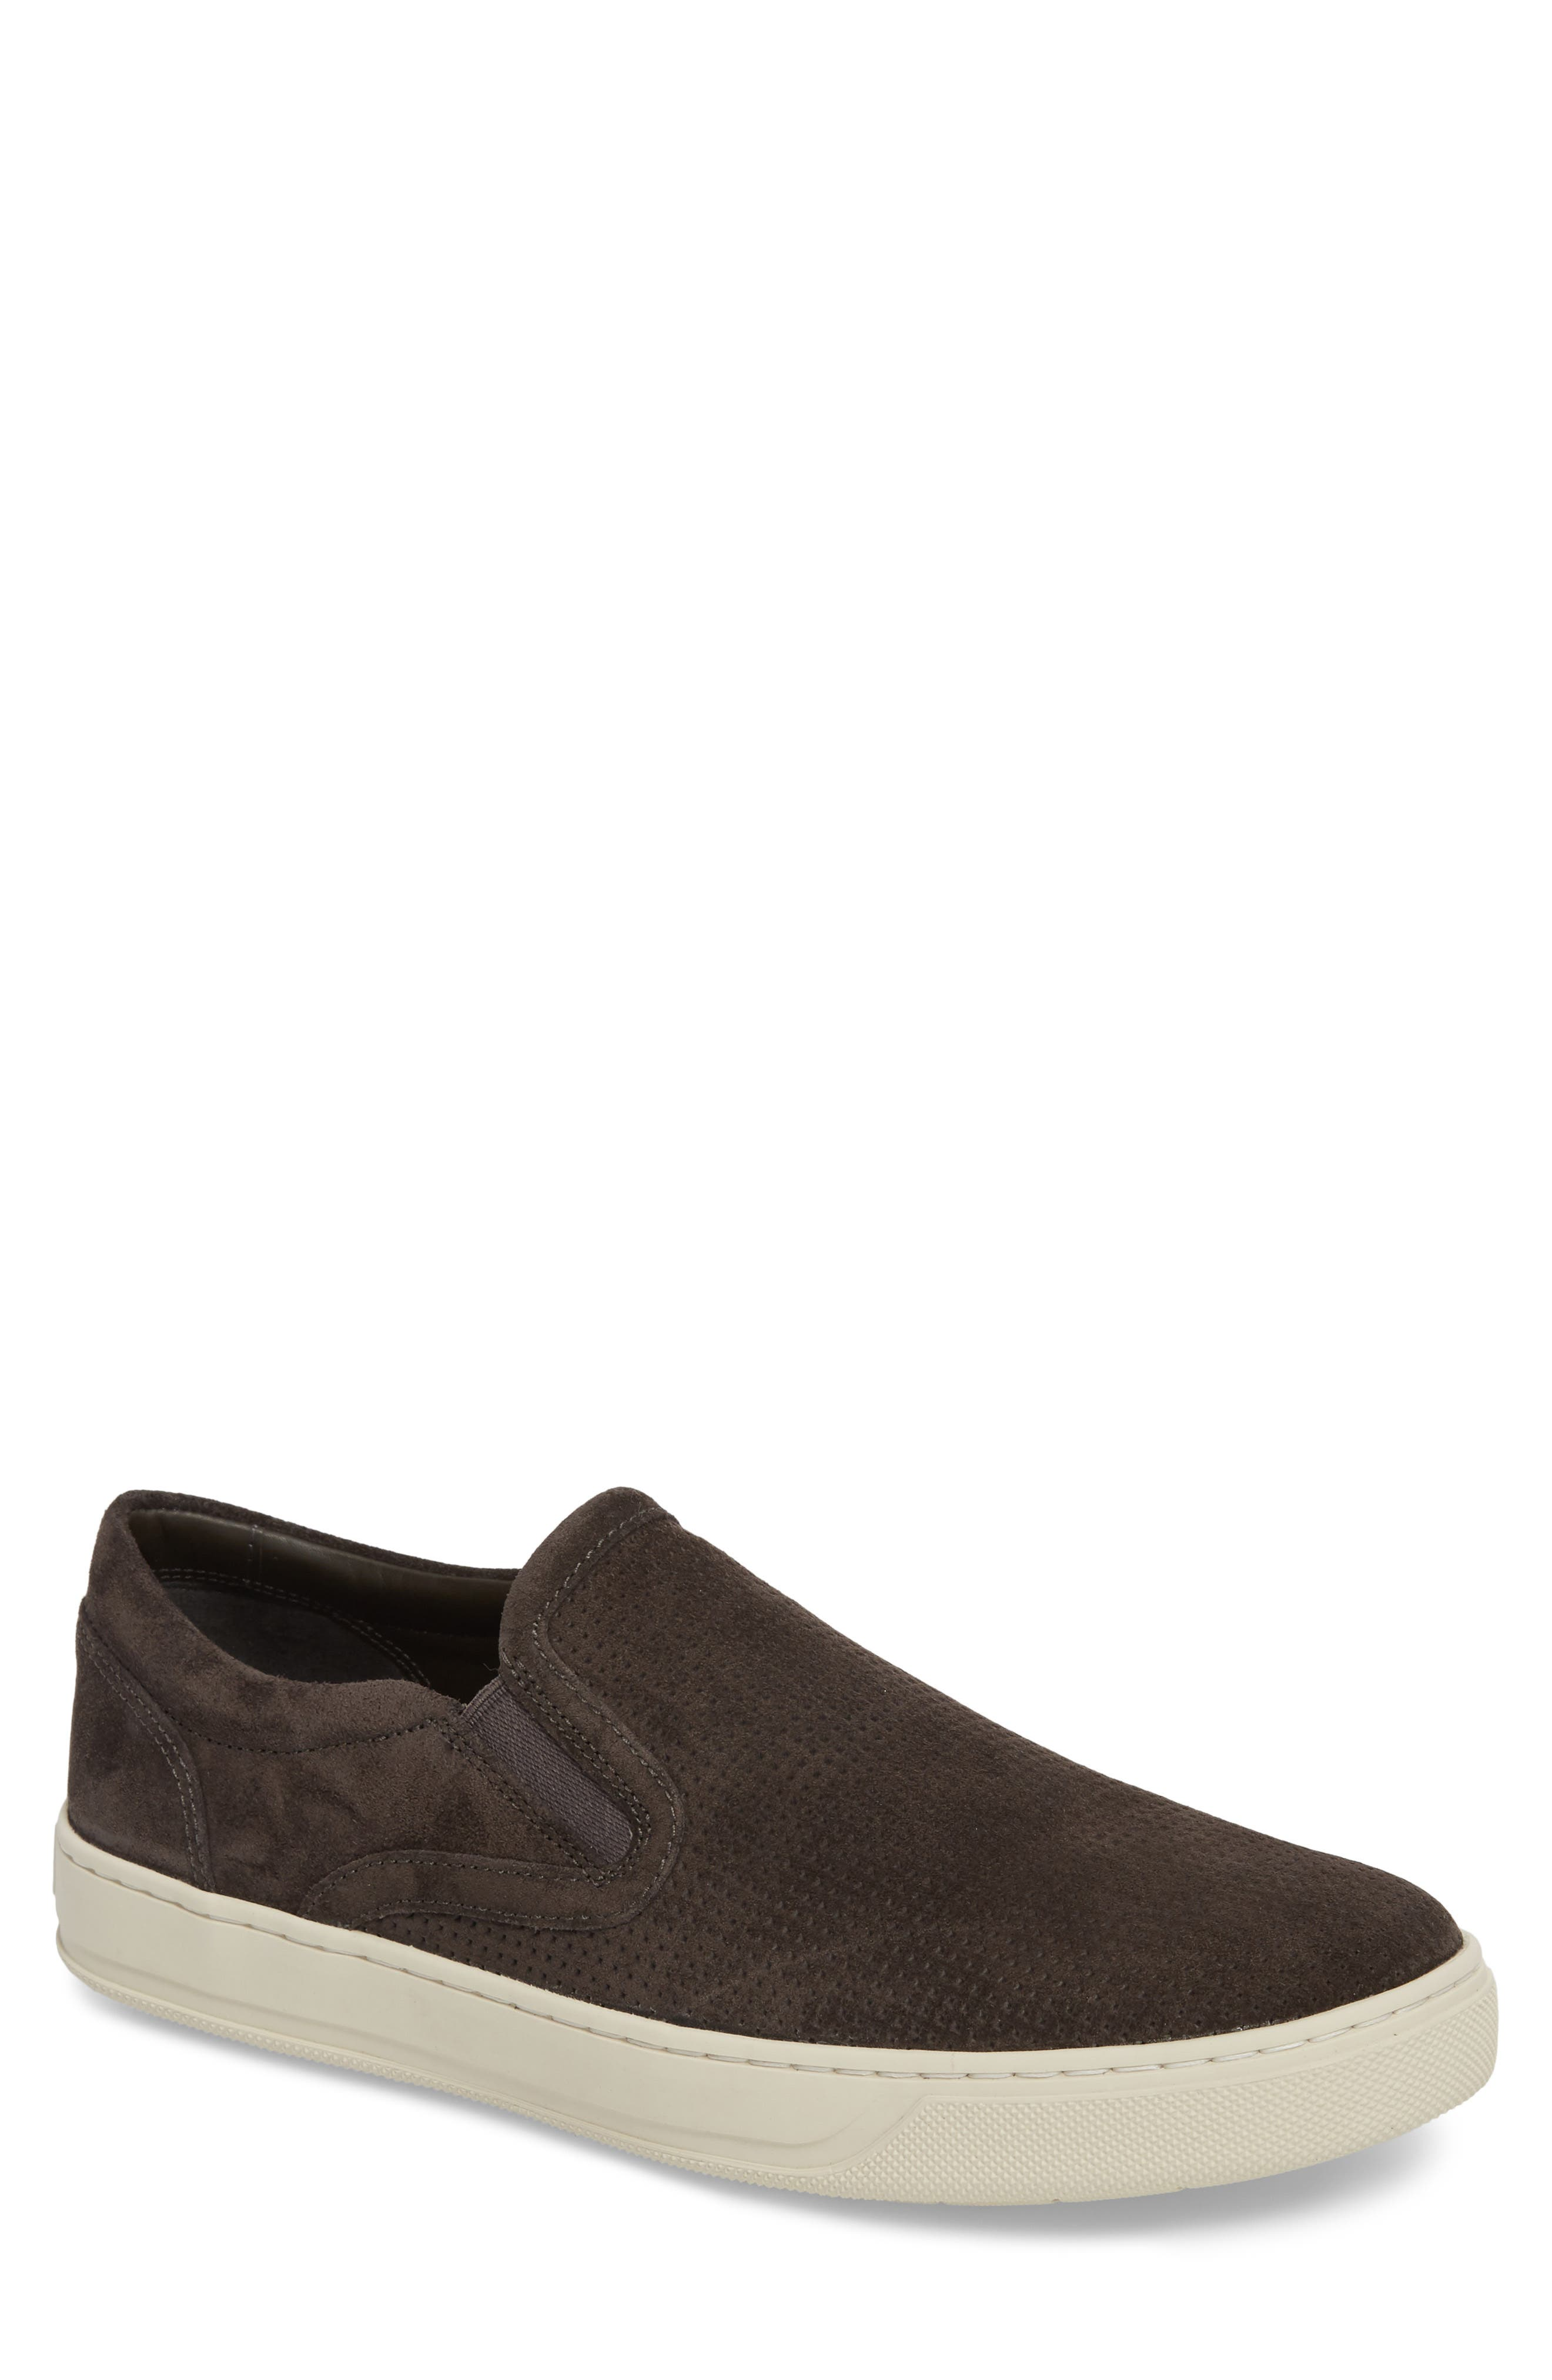 'Ace' Slip-On,                         Main,                         color, GRAPHITE SUEDE